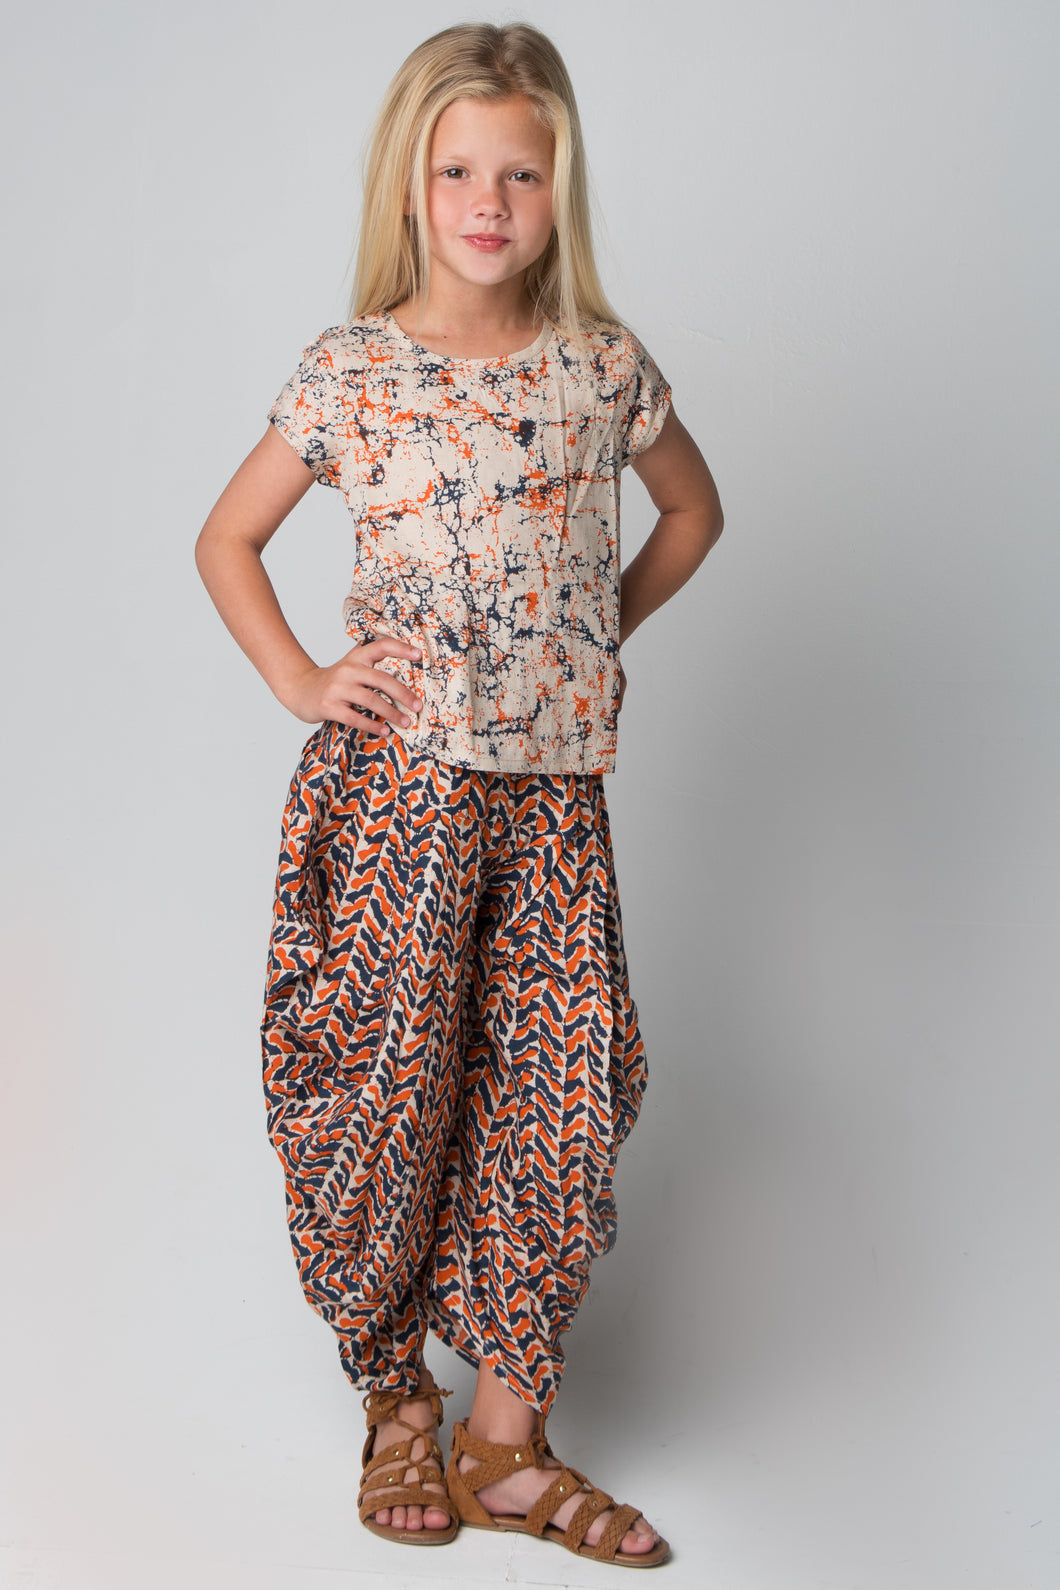 Orange & Navy Harem Pants and Top 2pc.Set - Kids Wholesale Boutique Clothing, 2-pc. set - Girls Dresses, Yo Baby Wholesale - Yo Baby